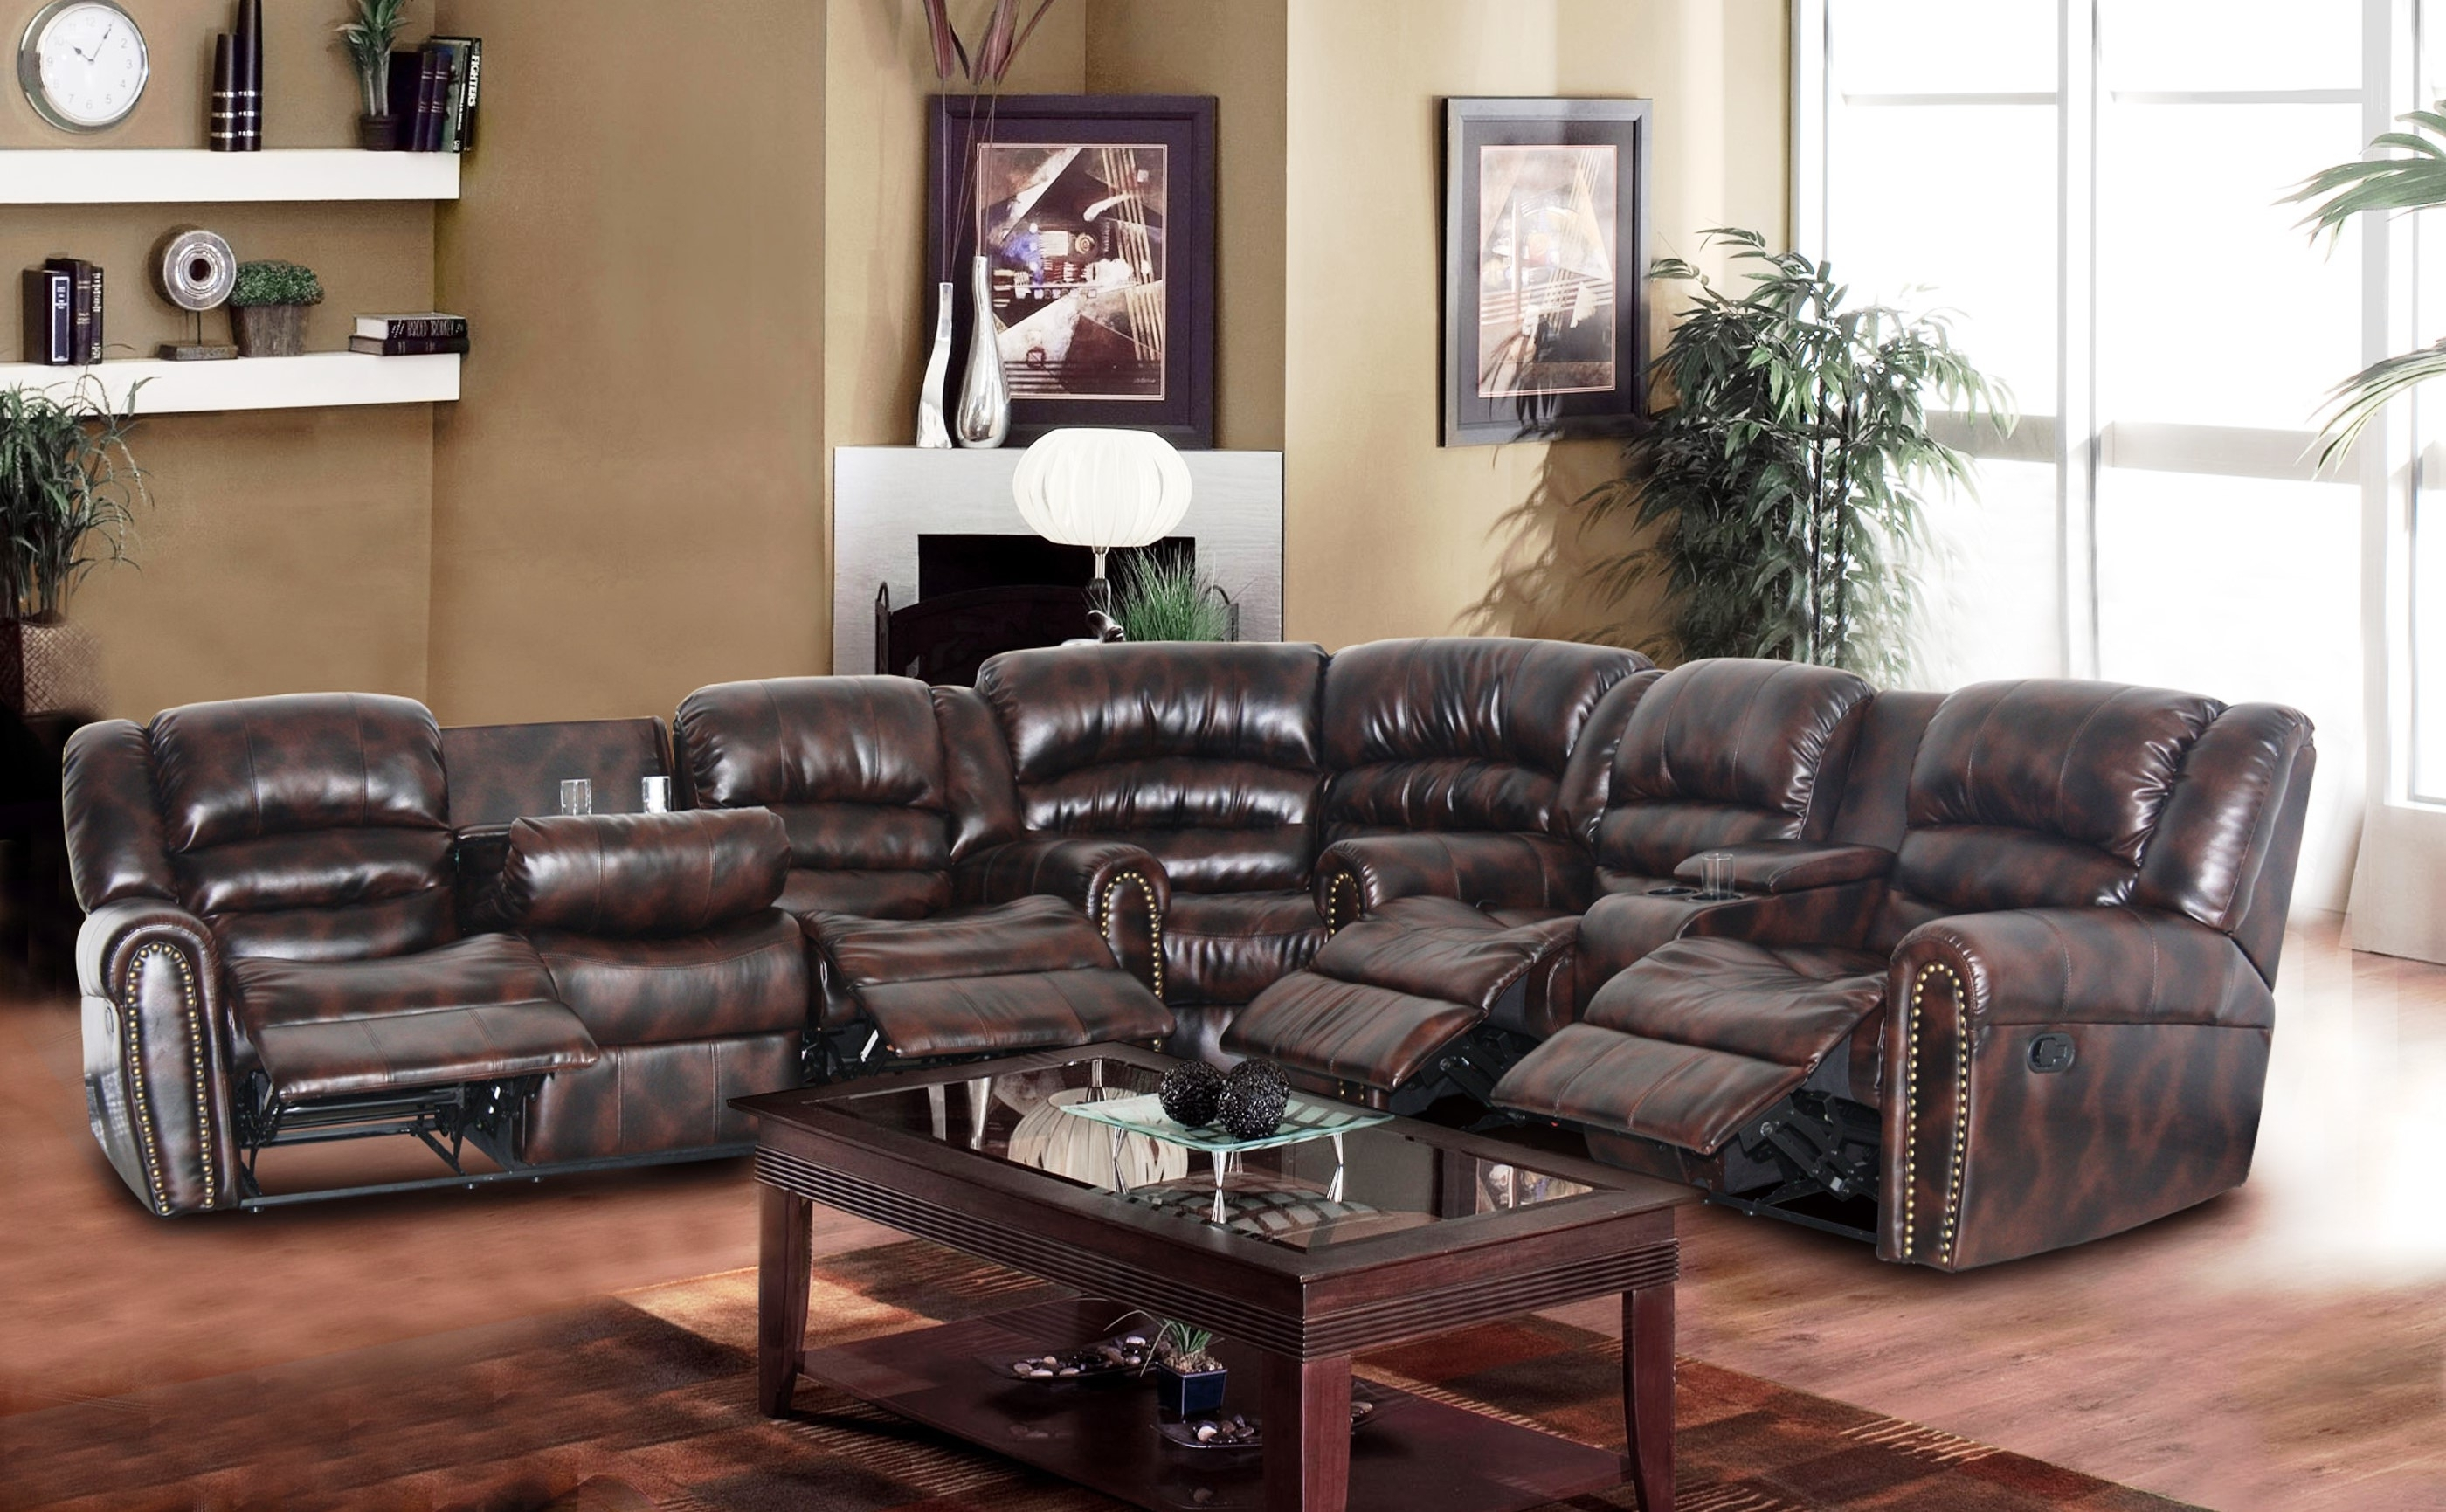 Red Leather Sectional Sofas With Recliners Inside Best And Newest Modern Leather Sofa Tags : Modern Leather Sectional Sofa With (View 14 of 20)